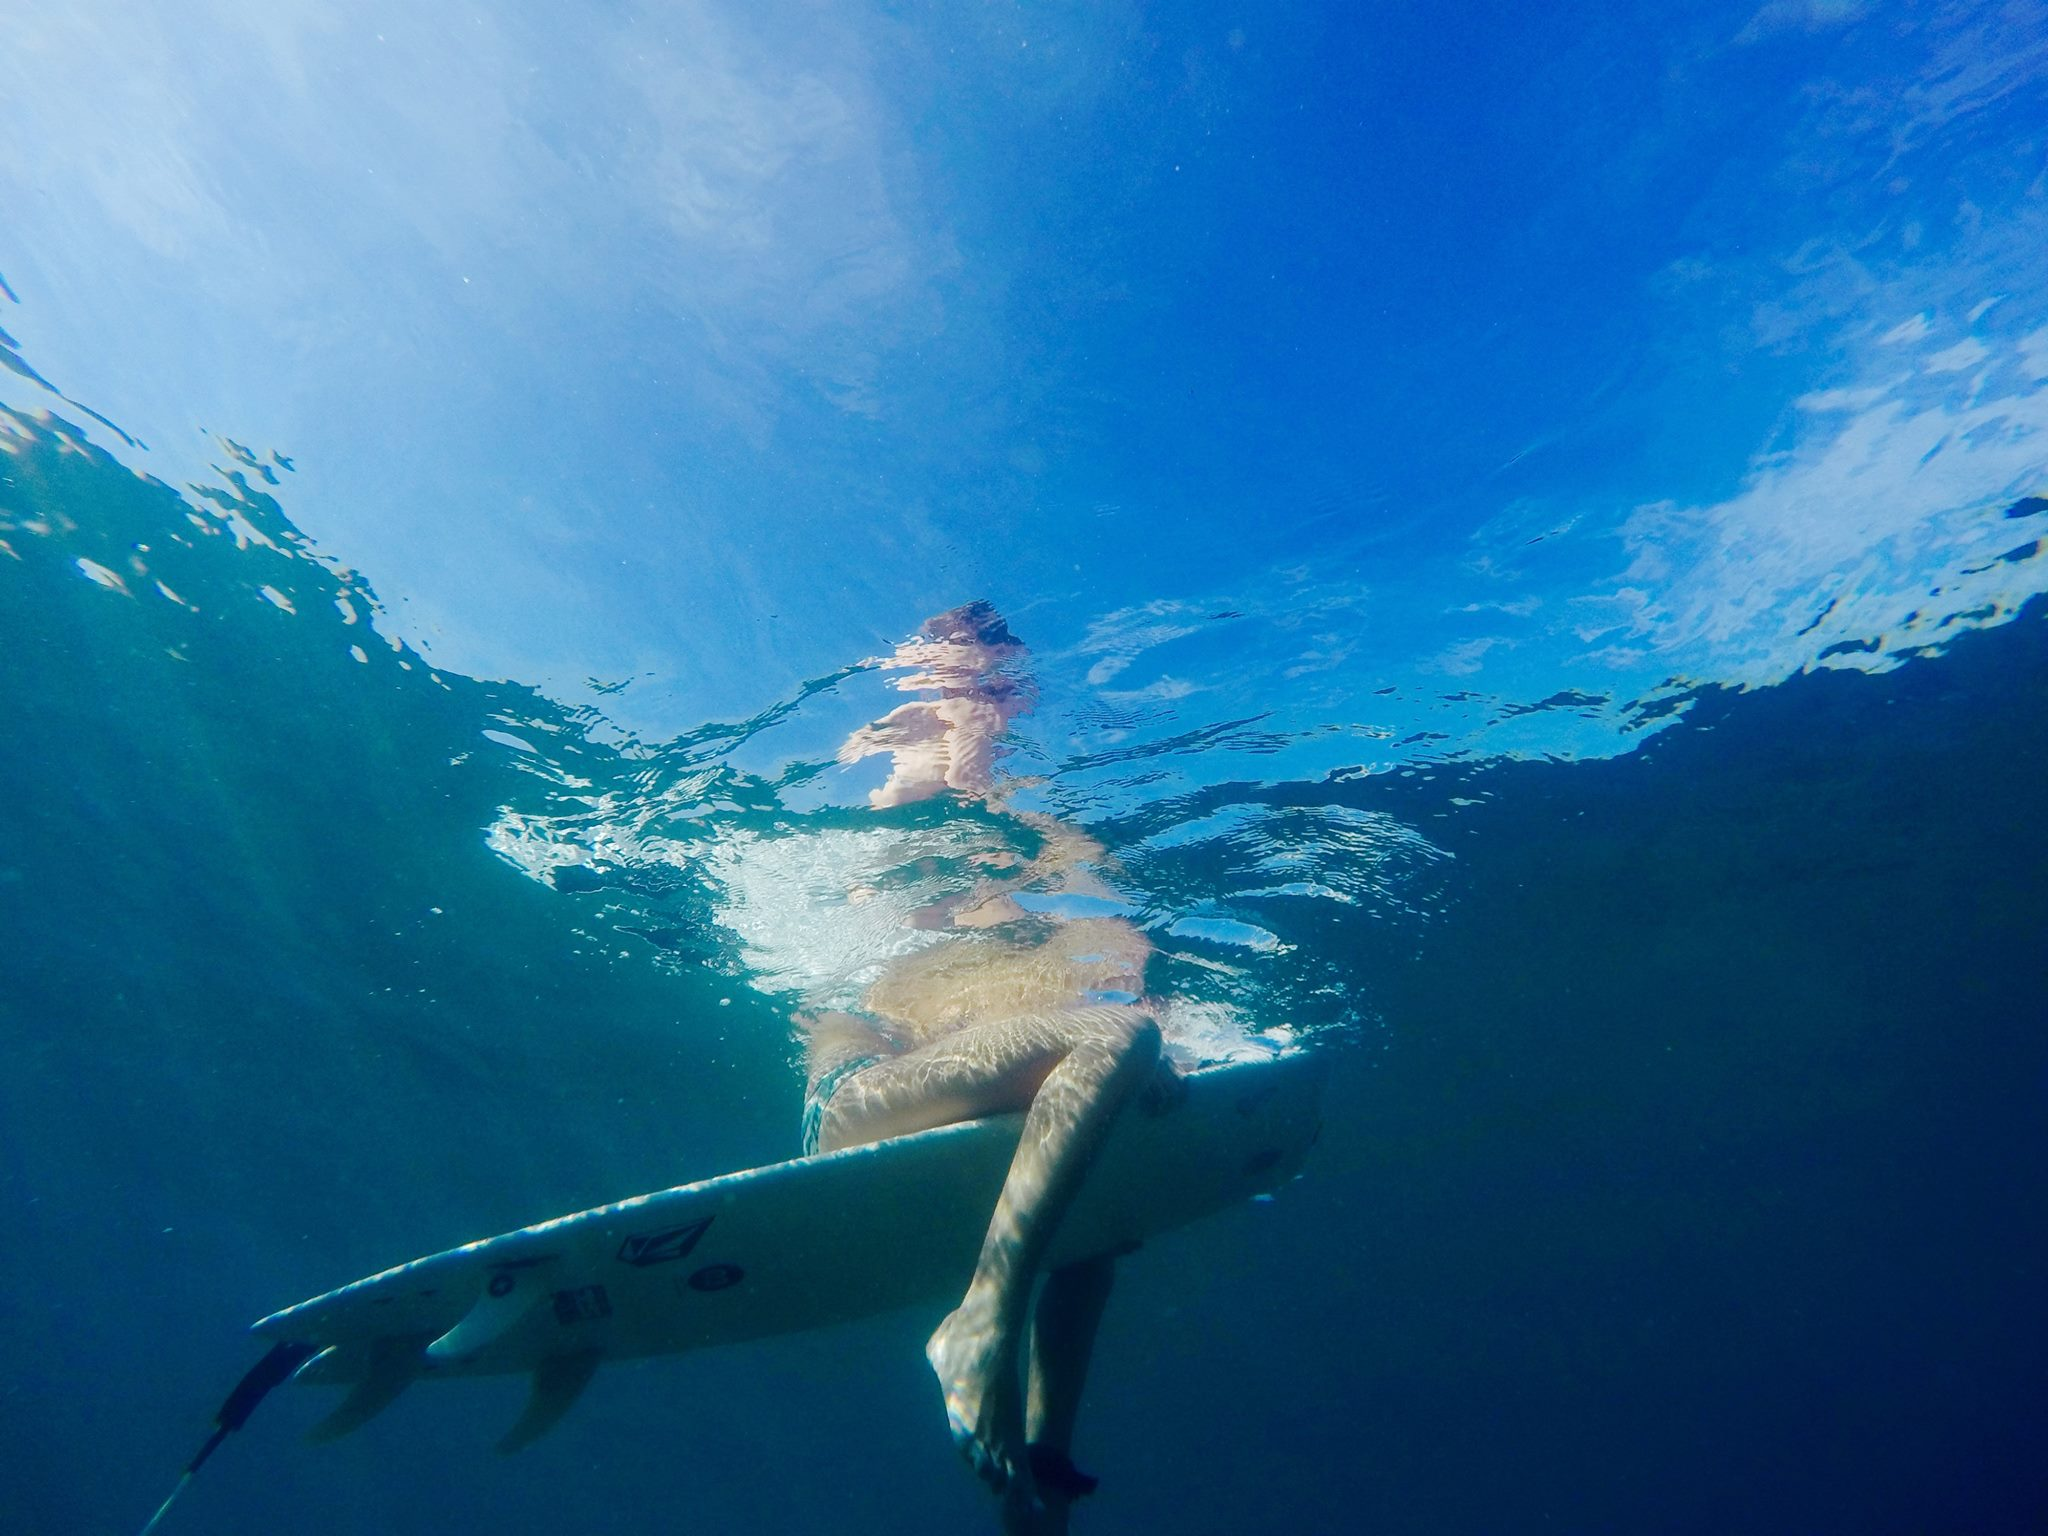 SURF LESSONS - A LIFE CHANGING EXPERIENCE